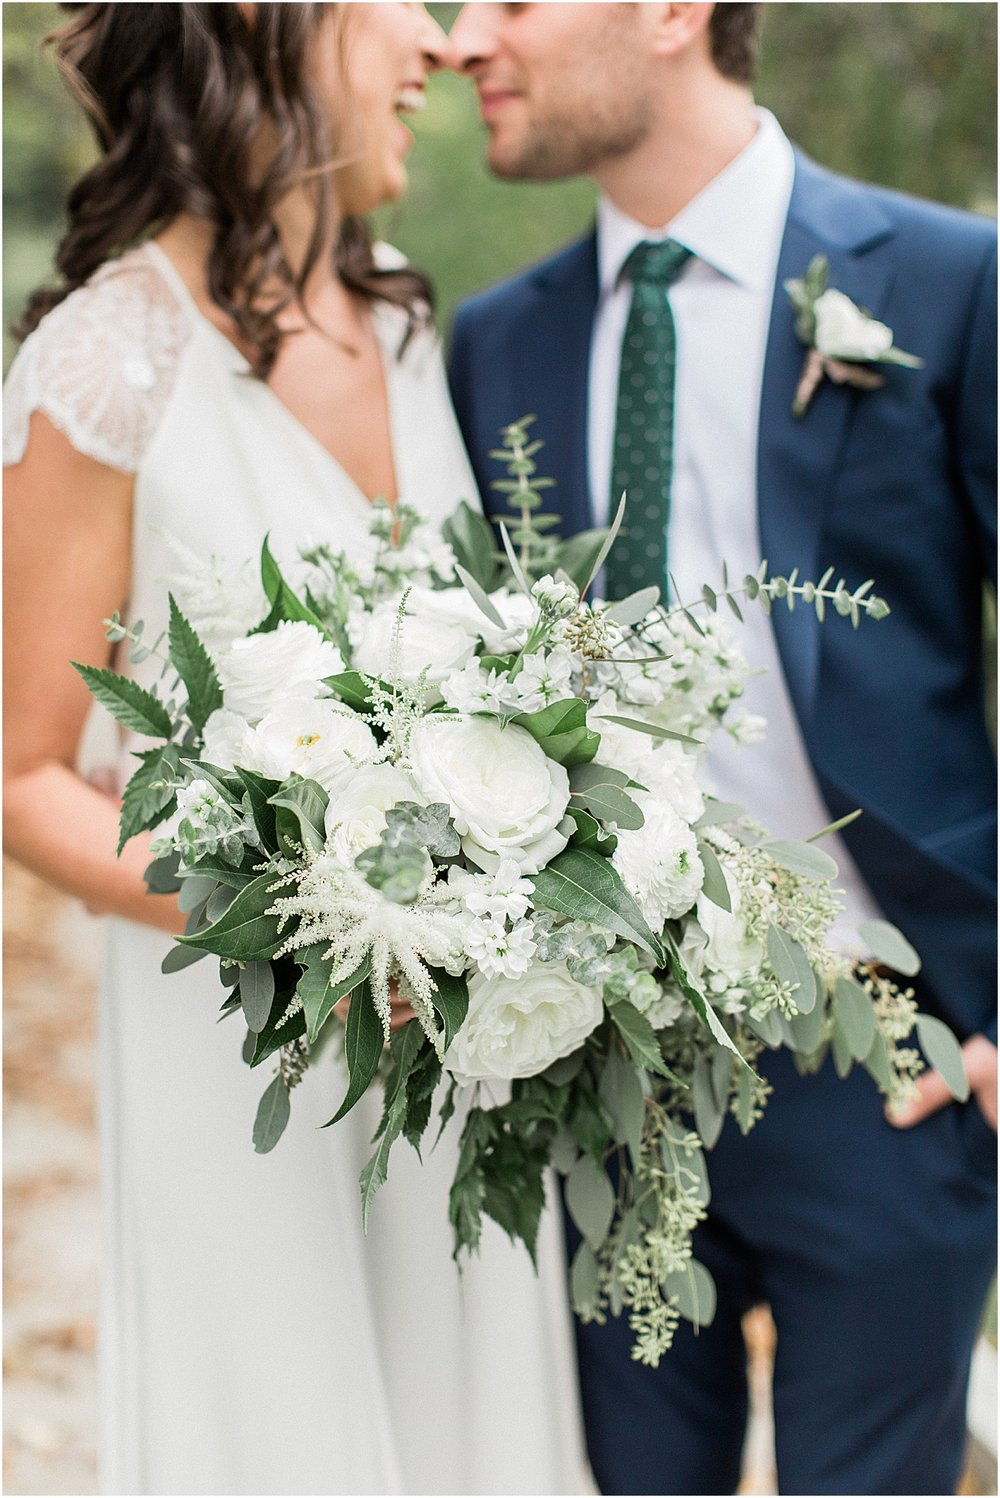 jenna_mike_willowdale_estate_topsfield_neutral_whites_greens_fall_cape_cod_boston_wedding_photographer_meredith_jane_photography_photo_1431.jpg